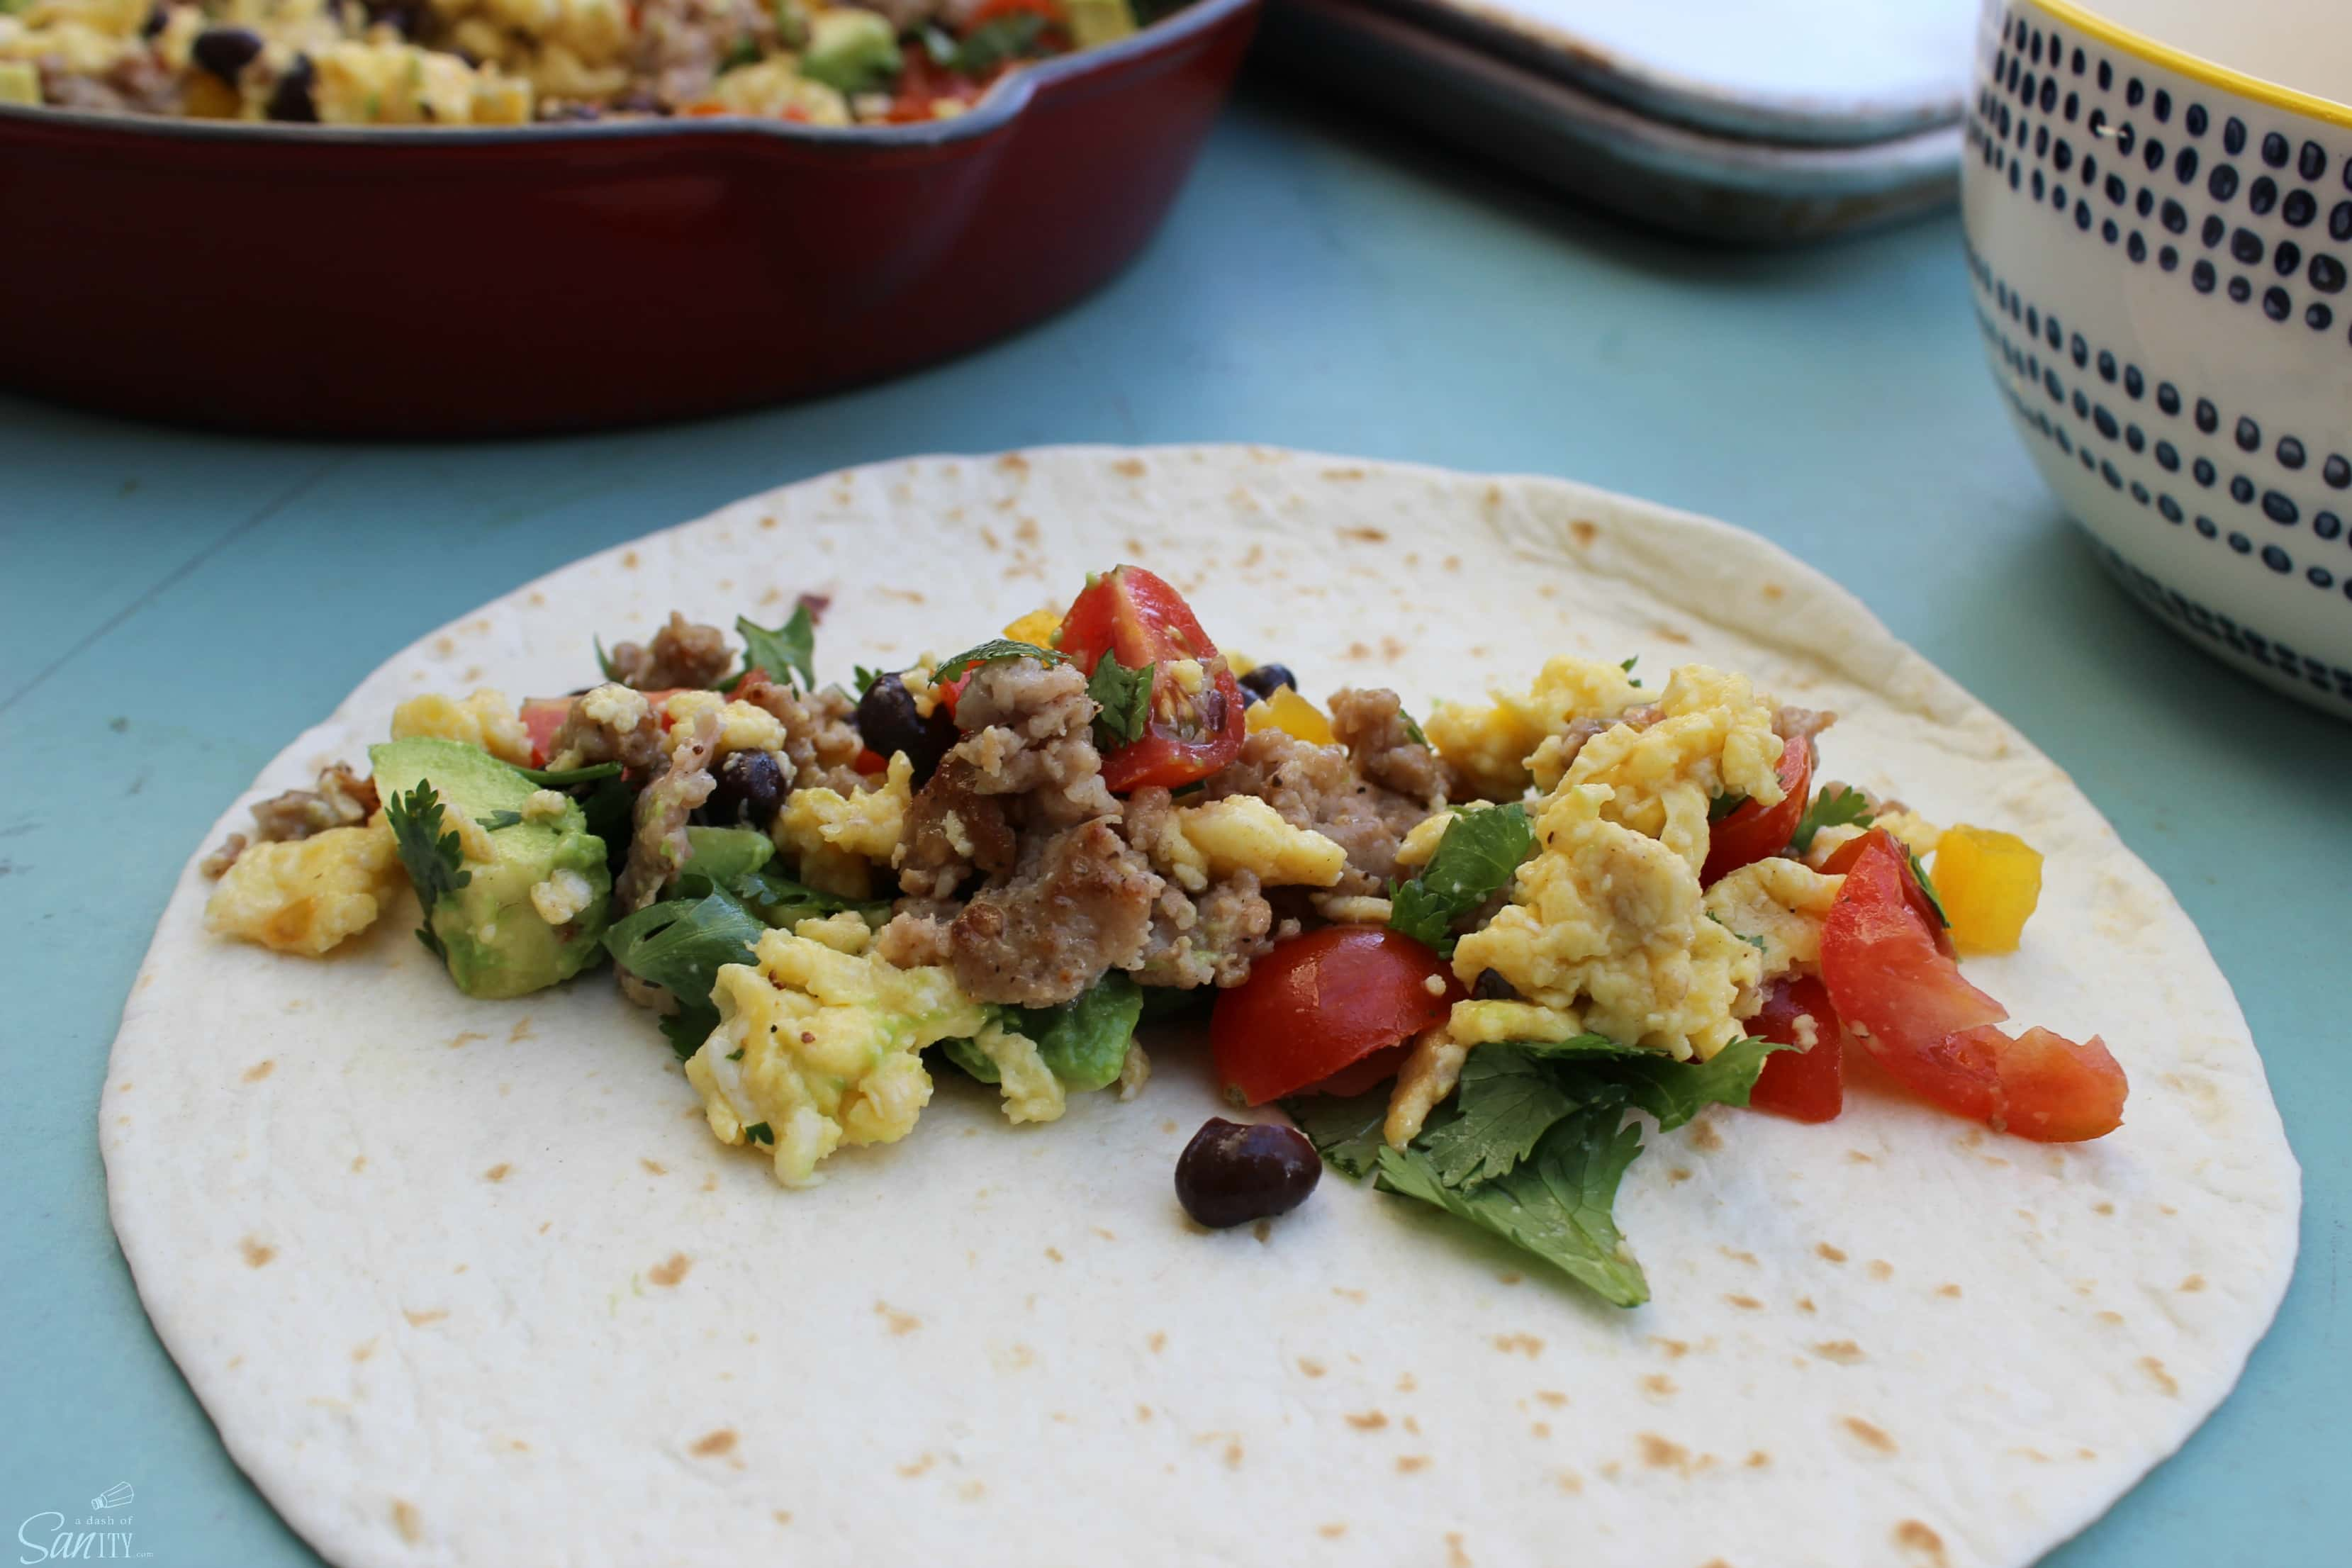 These Santa Fe Breakfast Taquitos are loaded with eggs, breakfast sausage, fresh peppers, tomatoes, cilantro, & jalapeno for those who like a little heat.